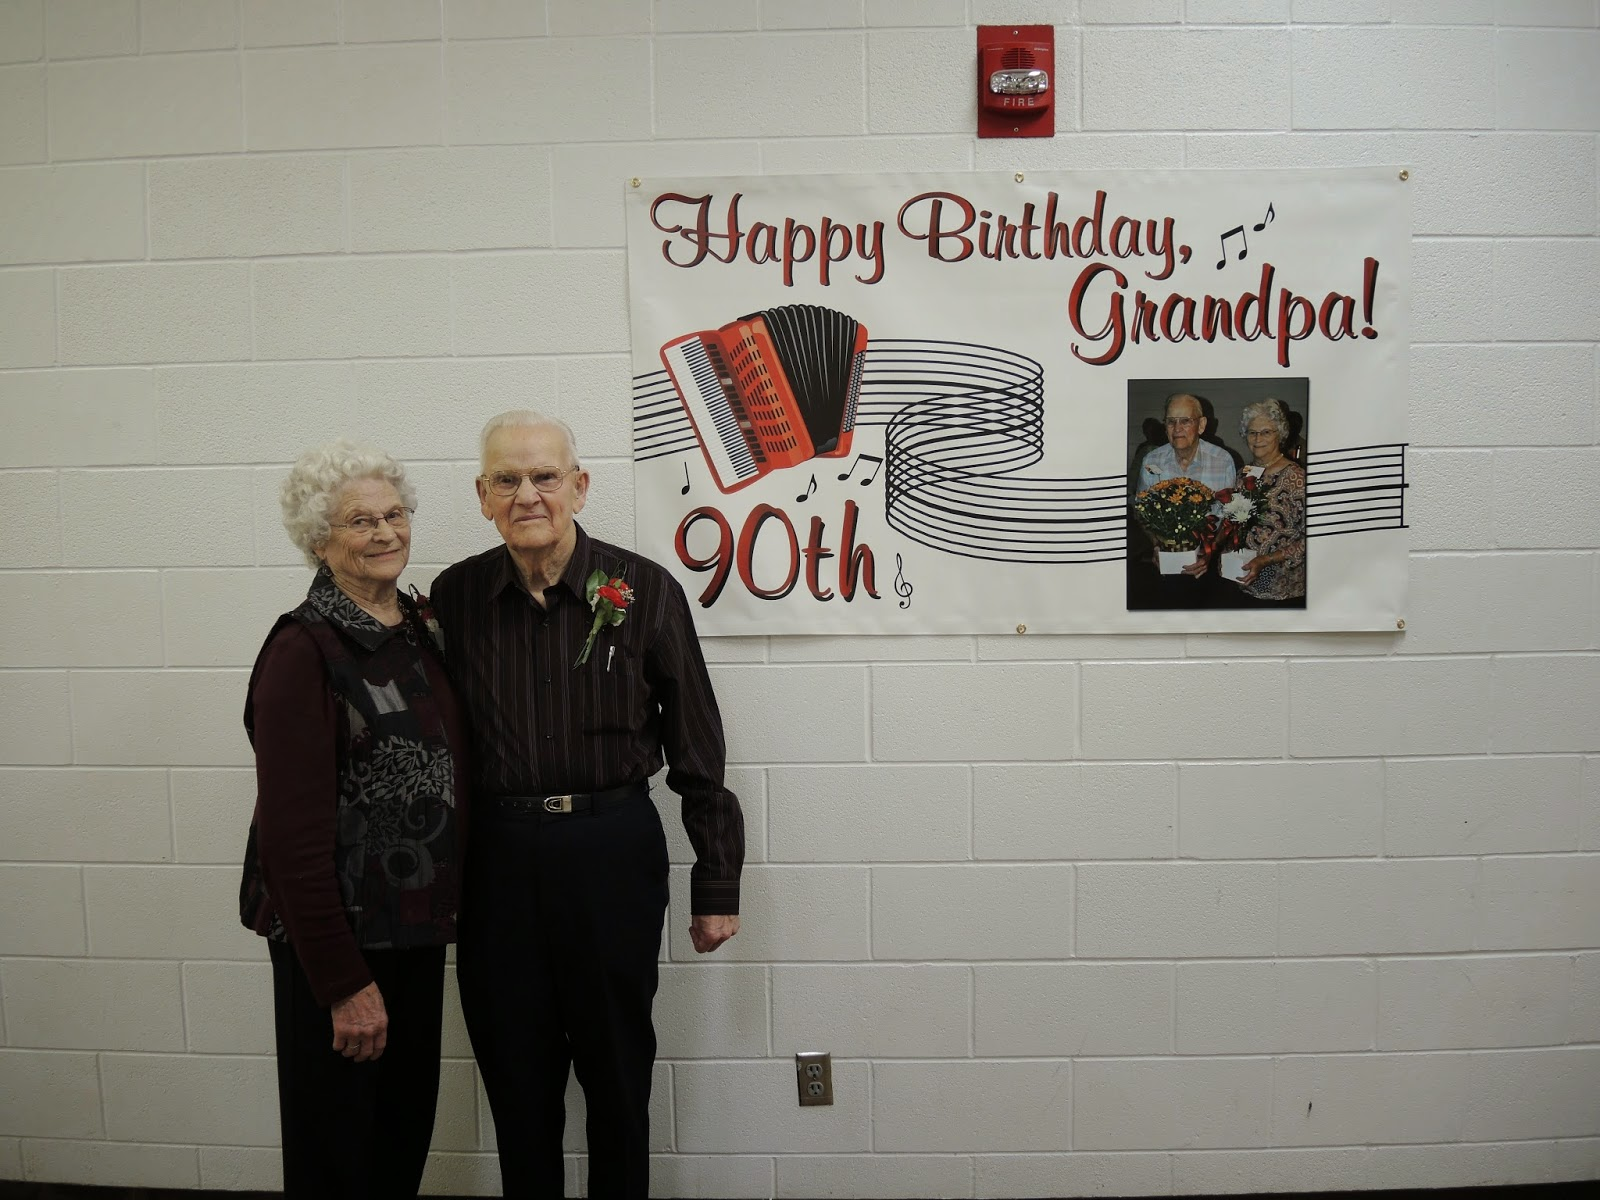 90th Birthday Banner - Printed by Banners.com